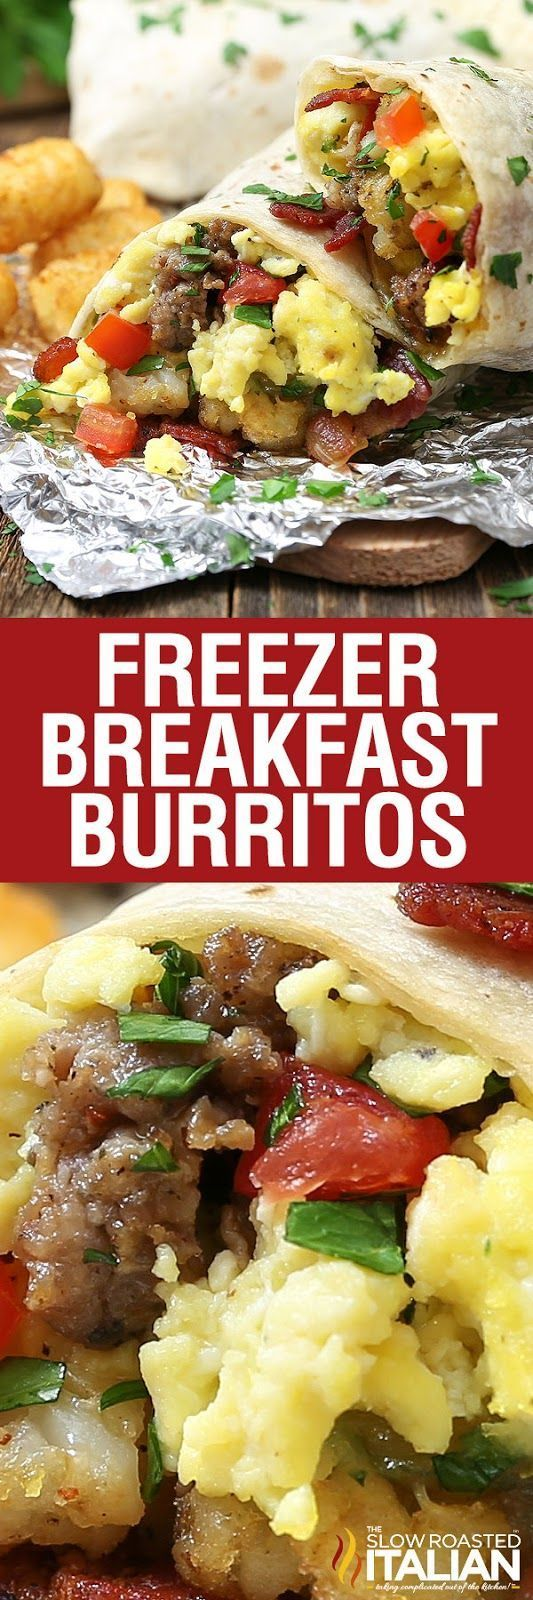 Make-ahead breakfast burritos are loaded with your favorite fillings. Eggs, sausage, bacon and tater tots are topped with ooey gooey cheese, and fresh vegetables. Just make up this easy recipe and toss them in the freezer. Pop them in the microwave in the morning for an easy grab and go breakfast.